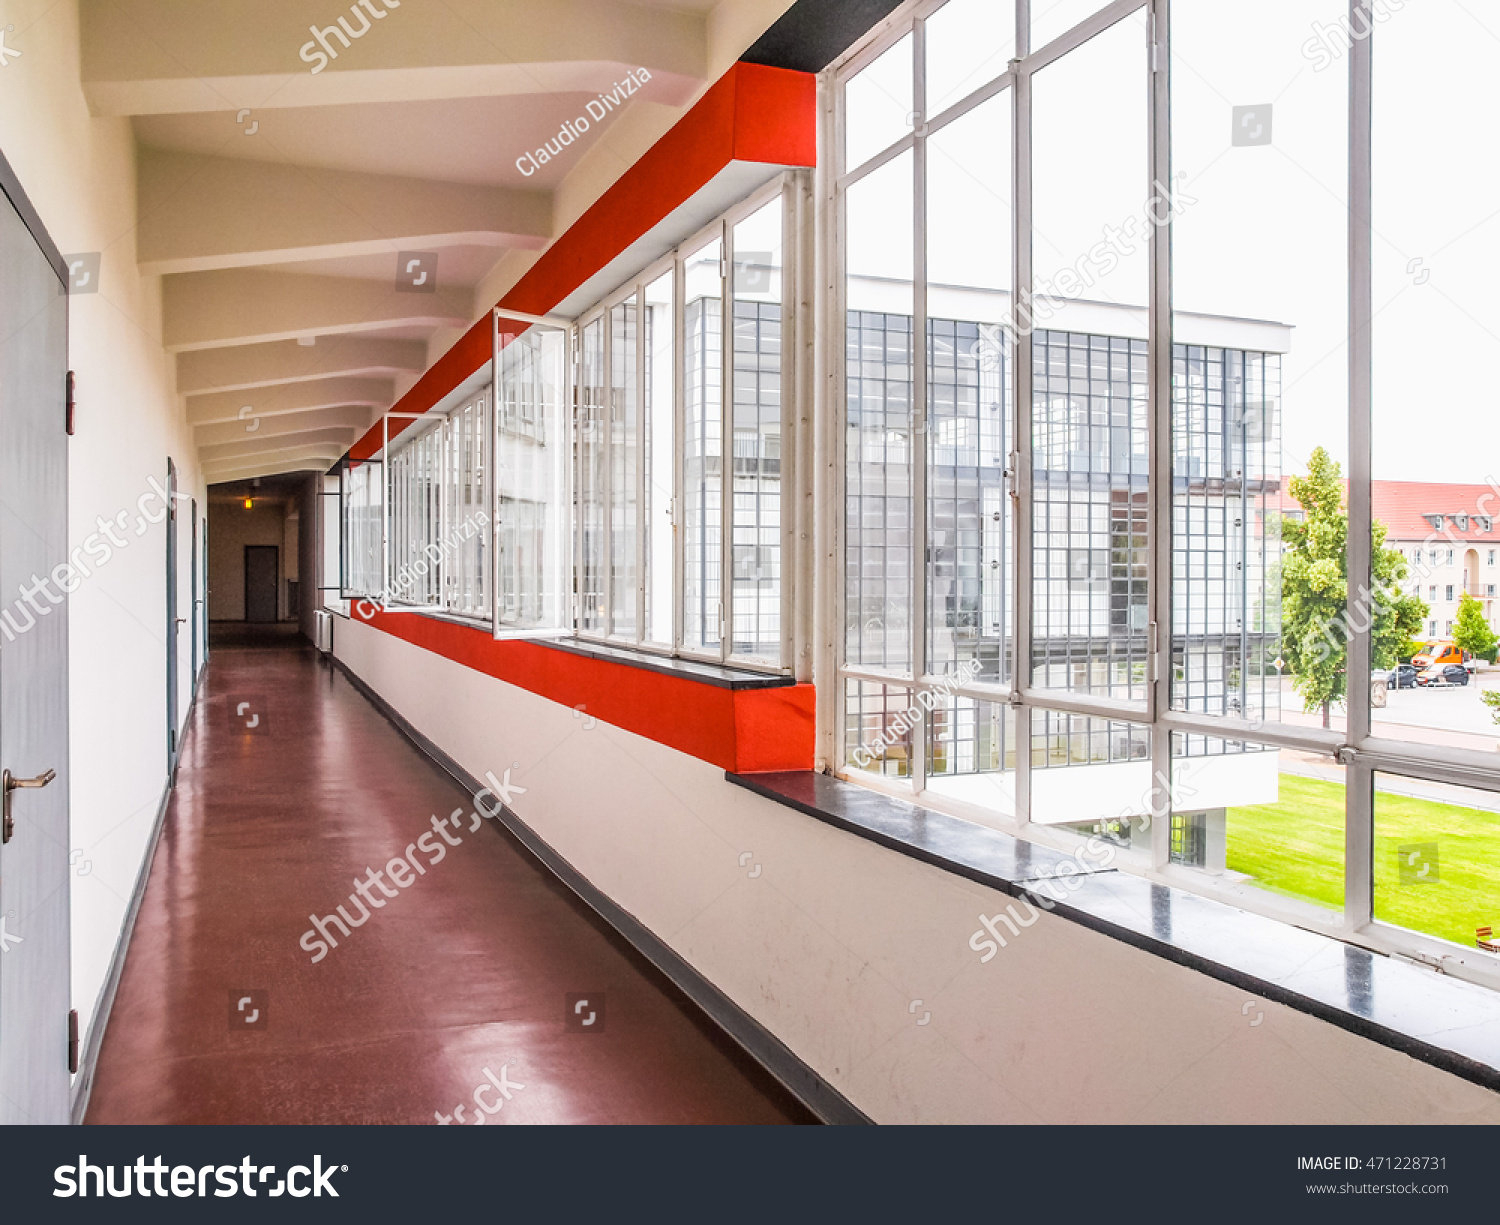 Dessau Germany June 13 2014 Bauhaus Stock Photo Edit Now 471228731